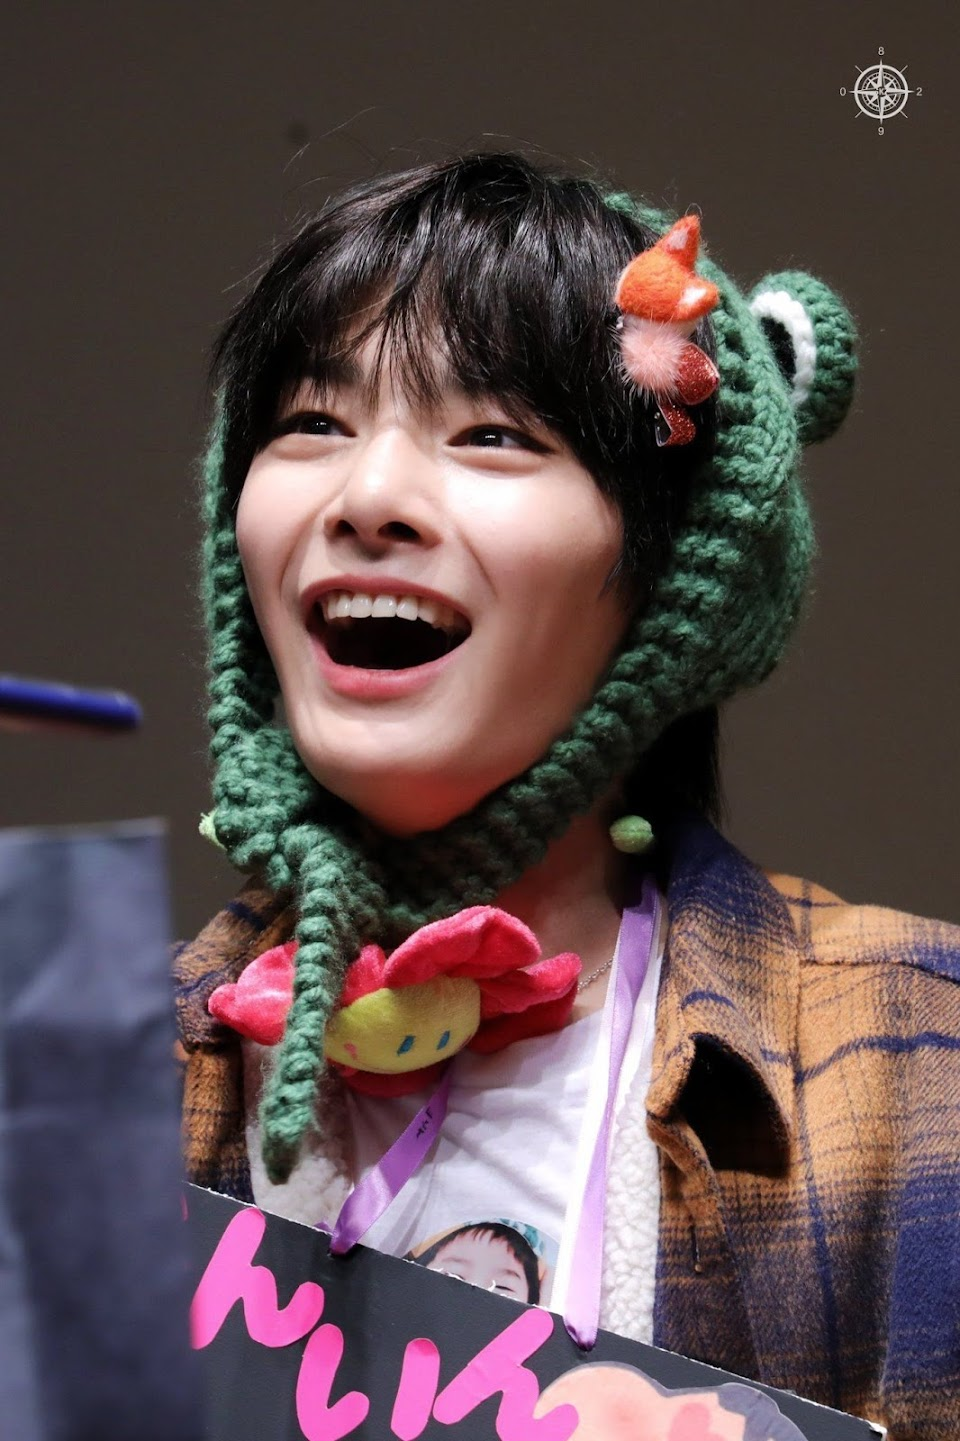 8 stray kids jeongin in